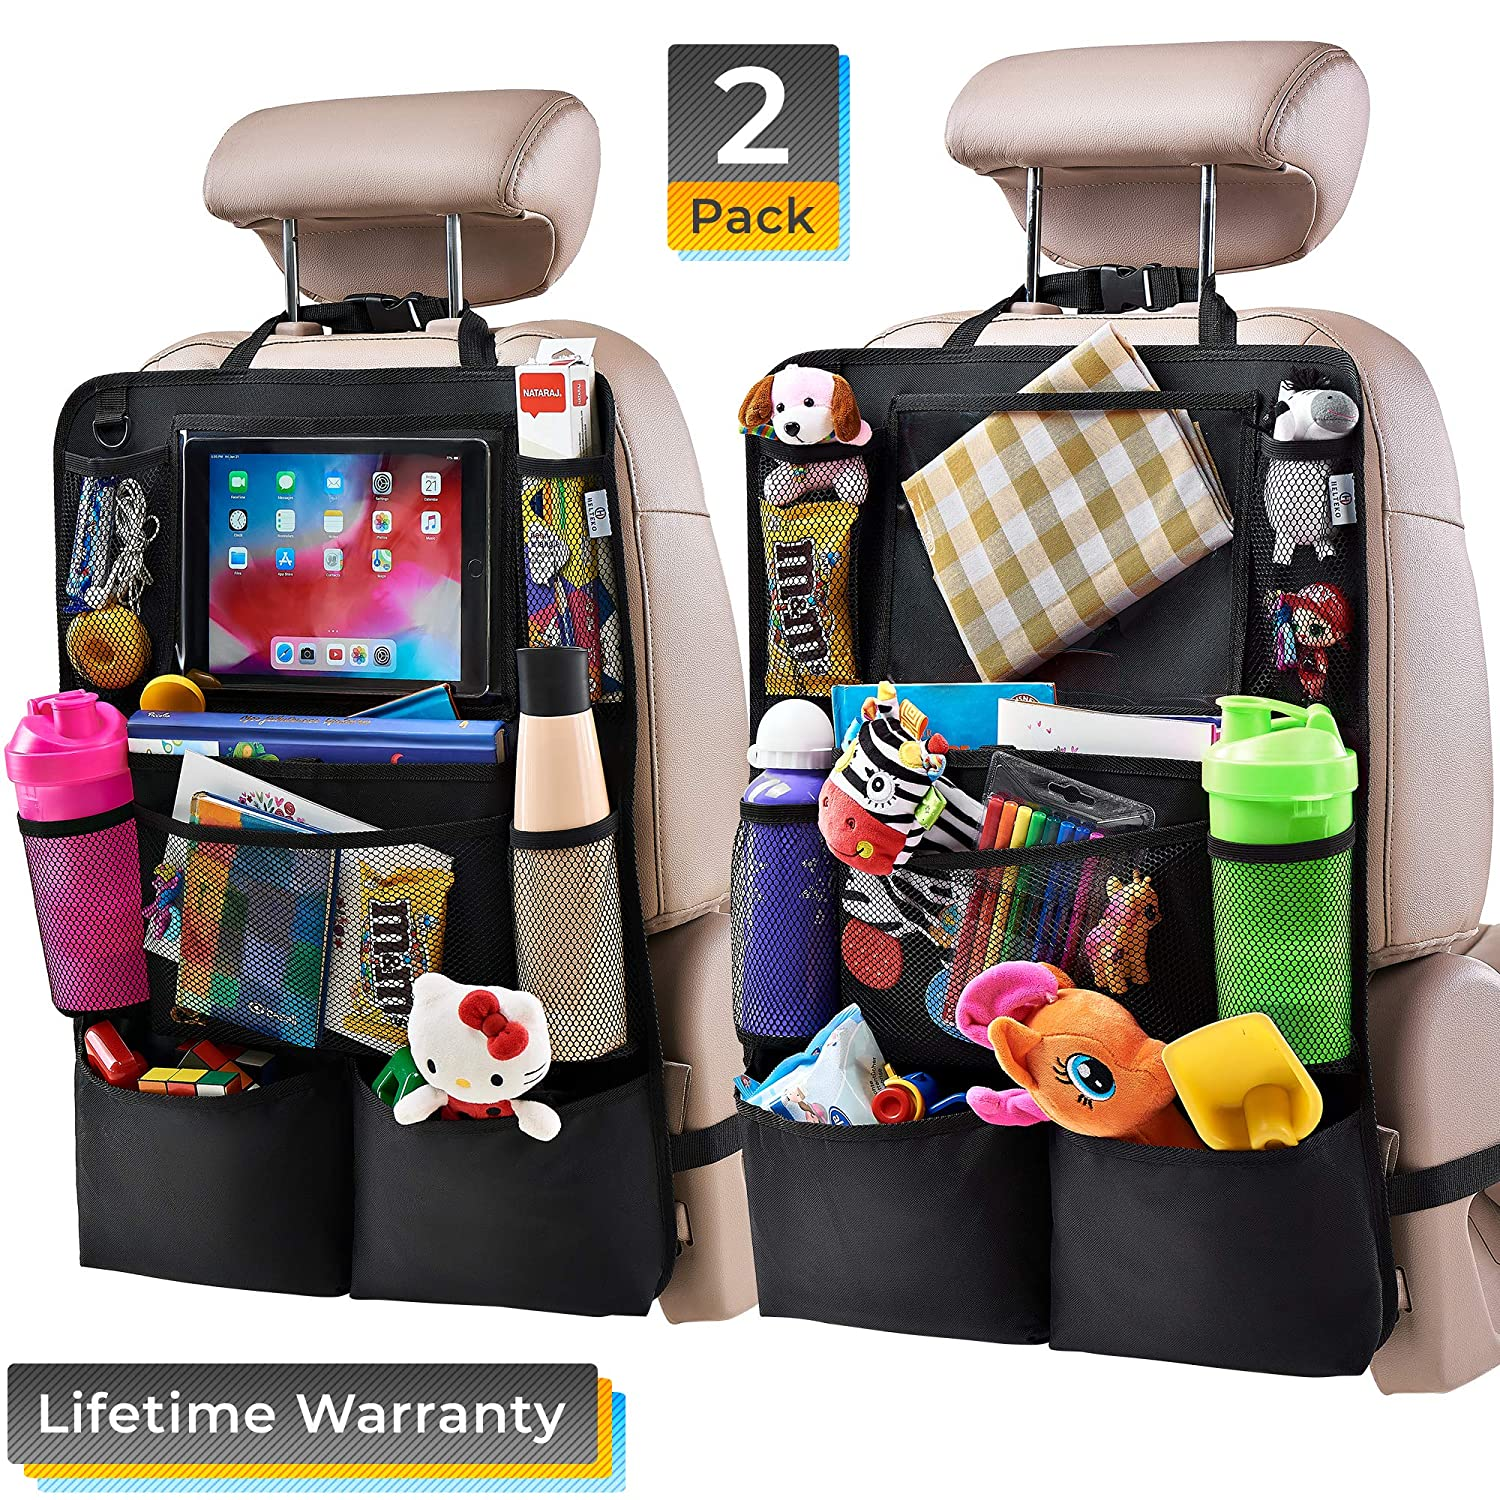 Car Back Seat Organizer for Kids 2 Pack Car Travel Accessories Kick Mats Back Seat Protector with 10 Tablet Holder Helteko Backseat Car Organizer Kick Mat with 8 Storage Pockets